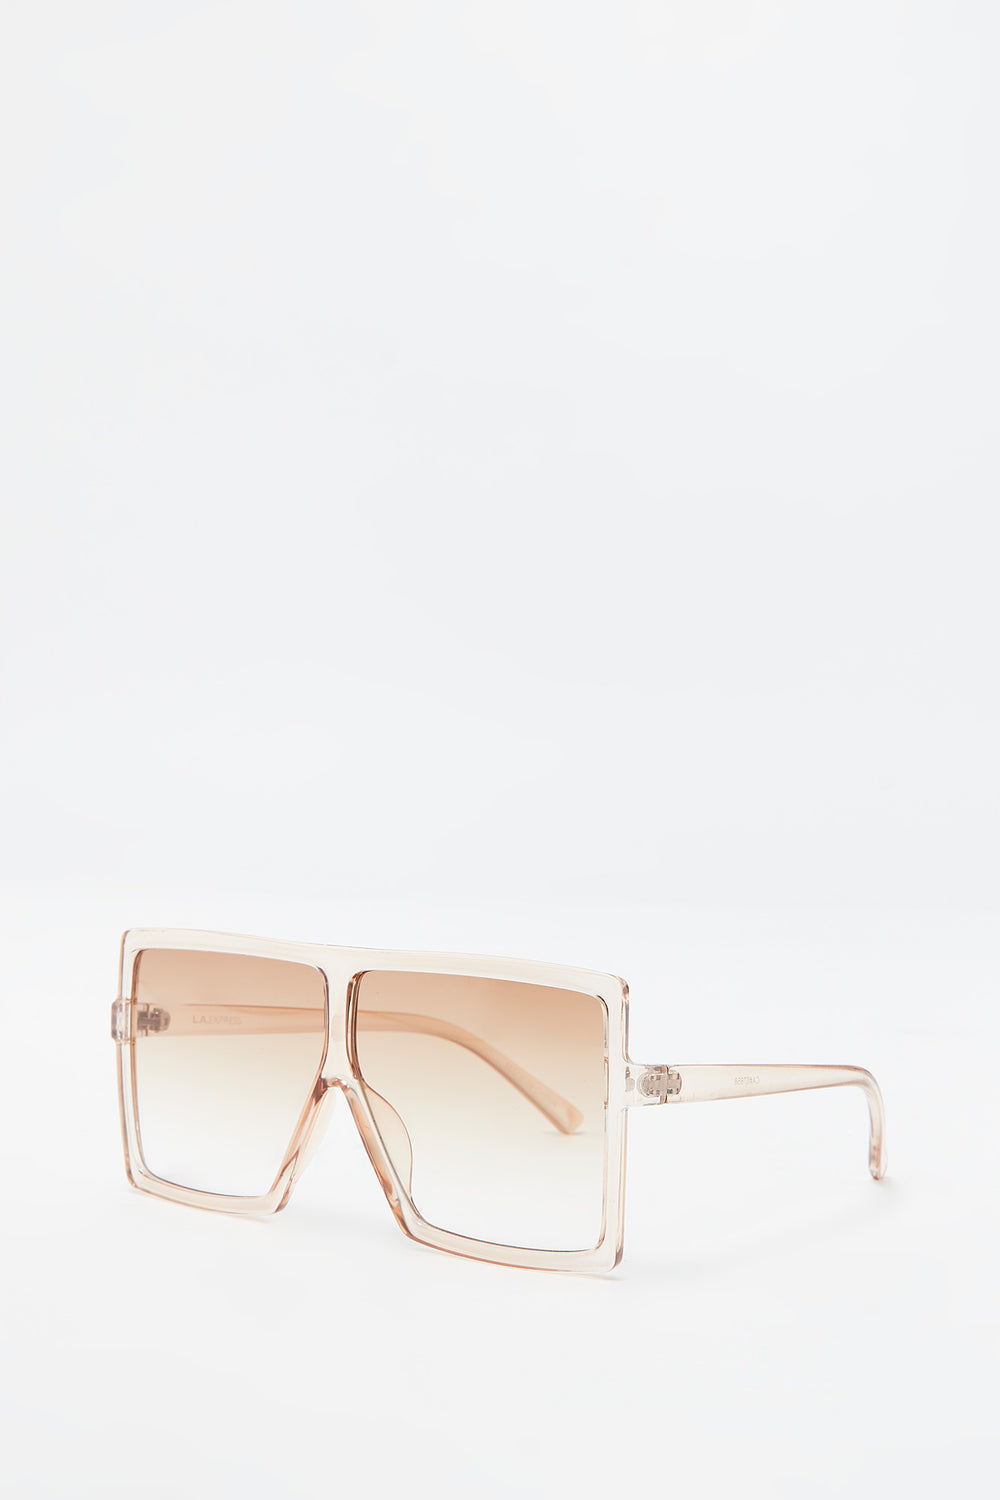 Oversized Flat Top Square Frame Sunglasses Cream